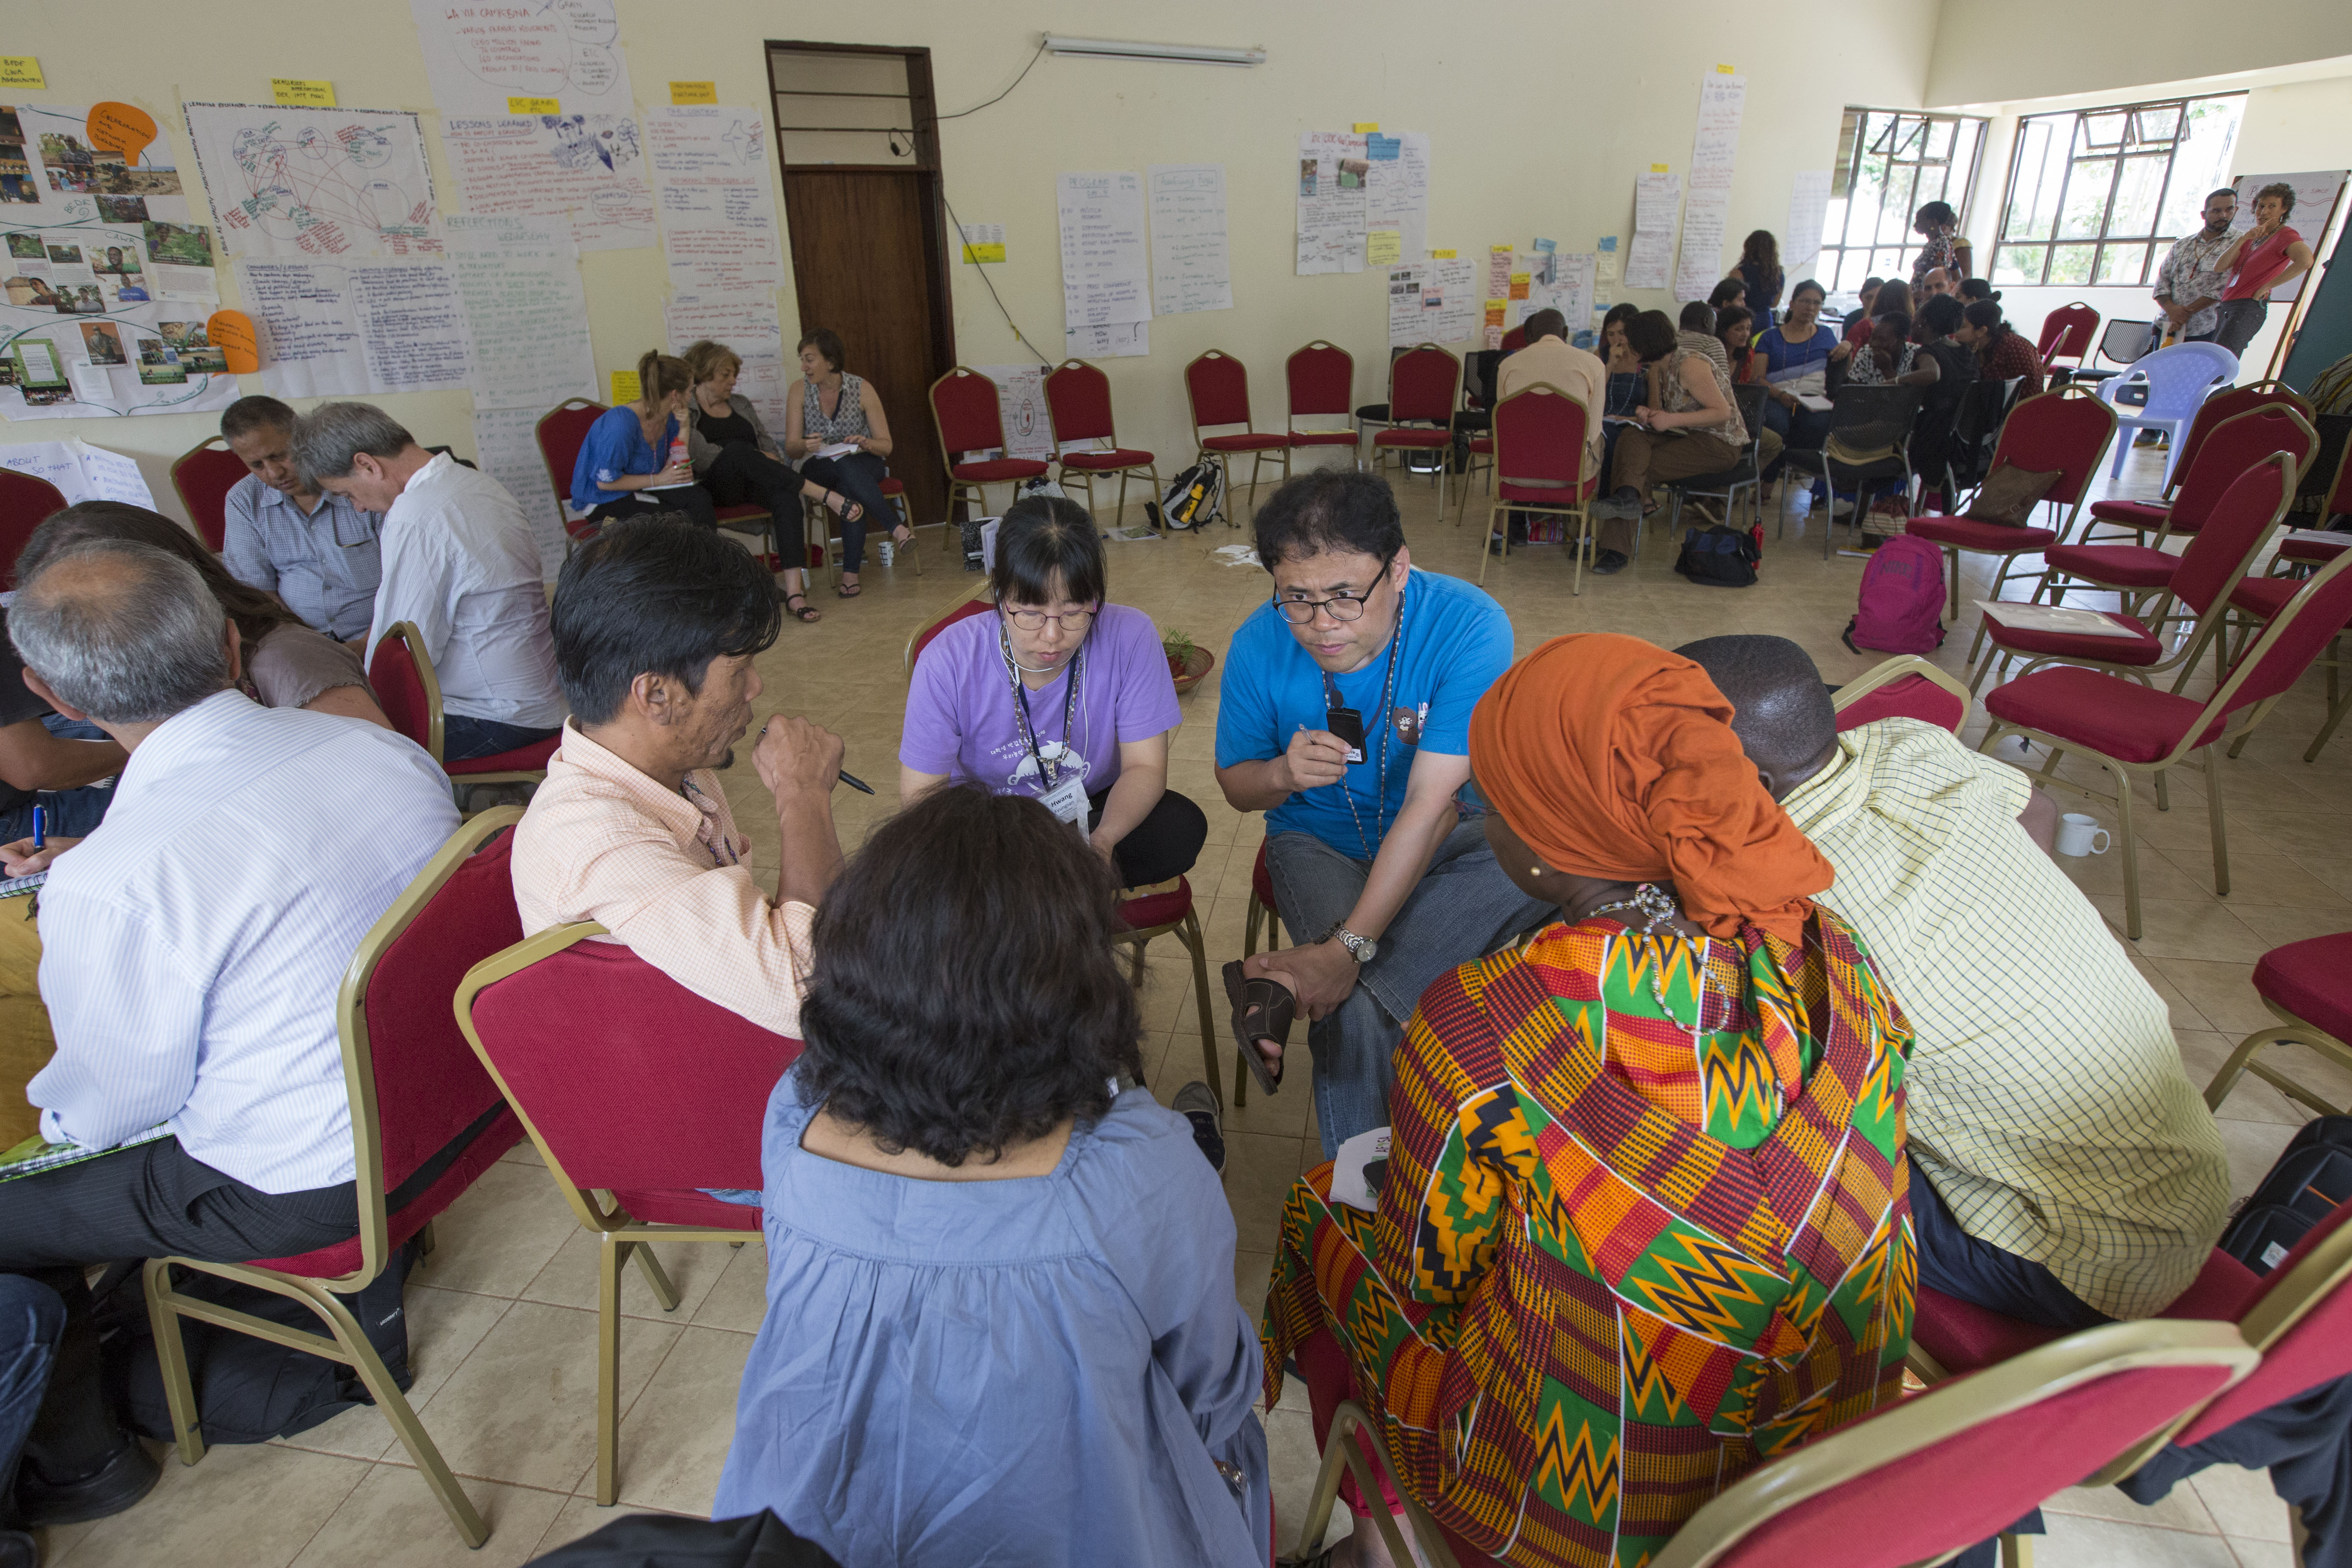 Small group sessions facilitated dynamic discussions and in depth sharing of ideas and experiences